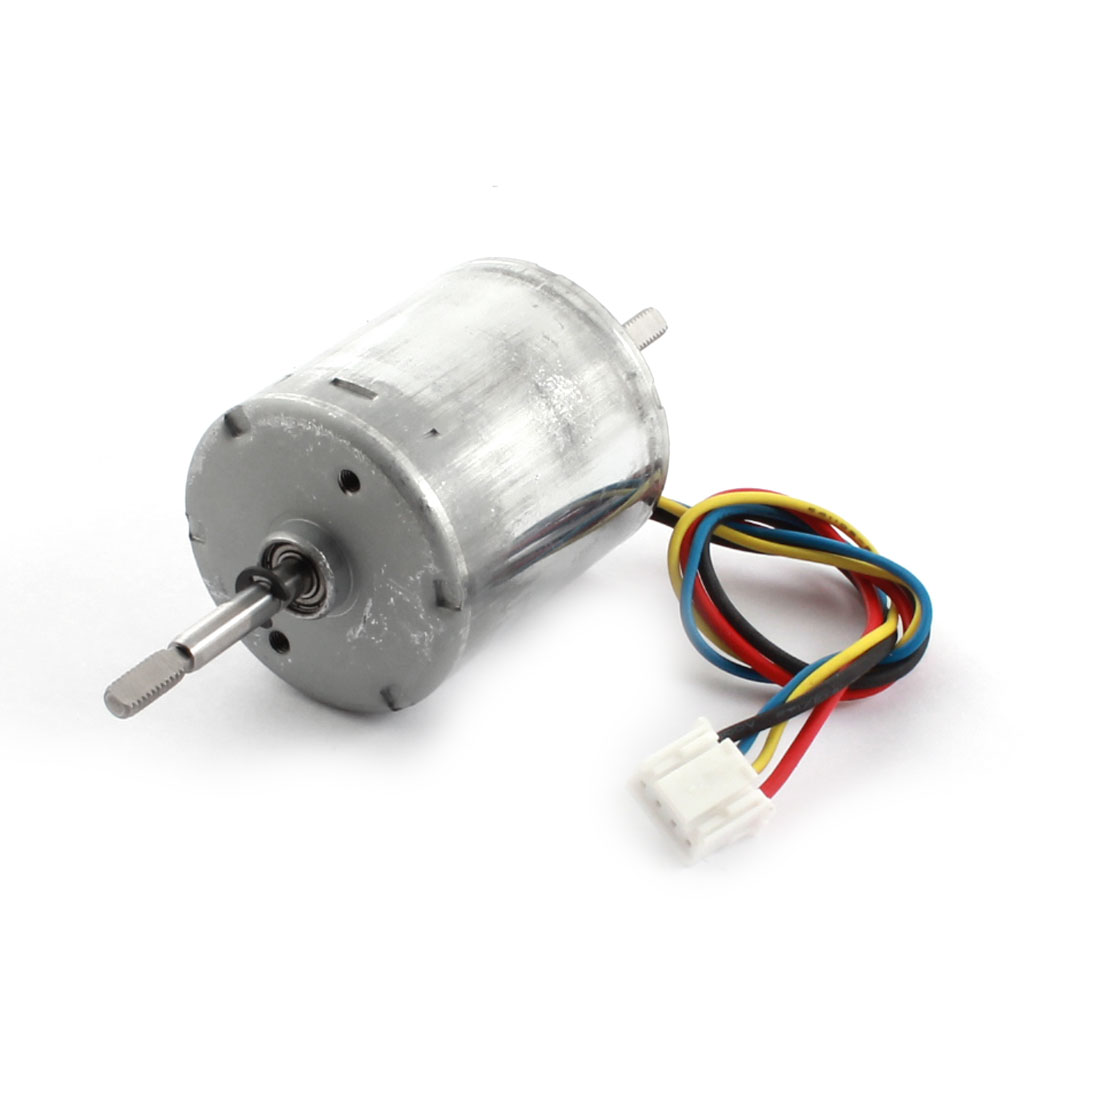 12V 0.16A 2400RPM High Speed D Shaped Double-shaft Micro DC Brushless Motor w JST-XH Plug for RC Toy